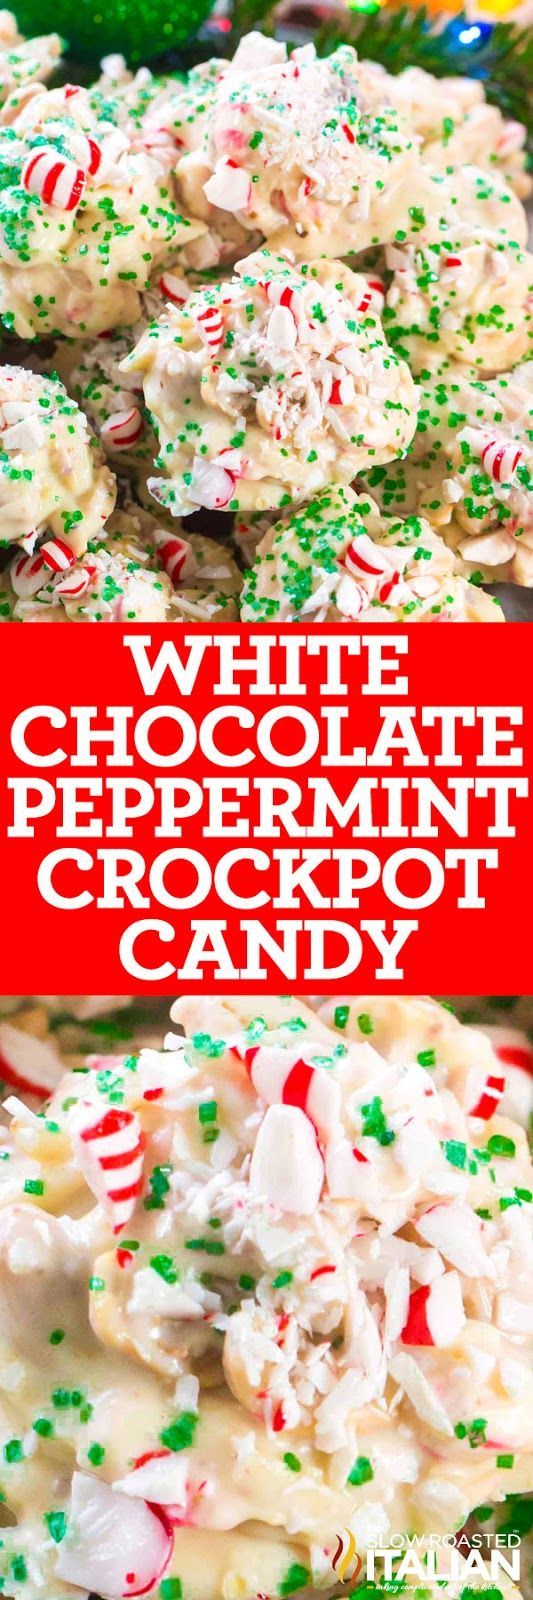 White Chocolate Peppermint Crockpot Candy is creamy, crunchy and very festive. Loaded with cashews, peanuts, almonds and refreshing peppermint candy.